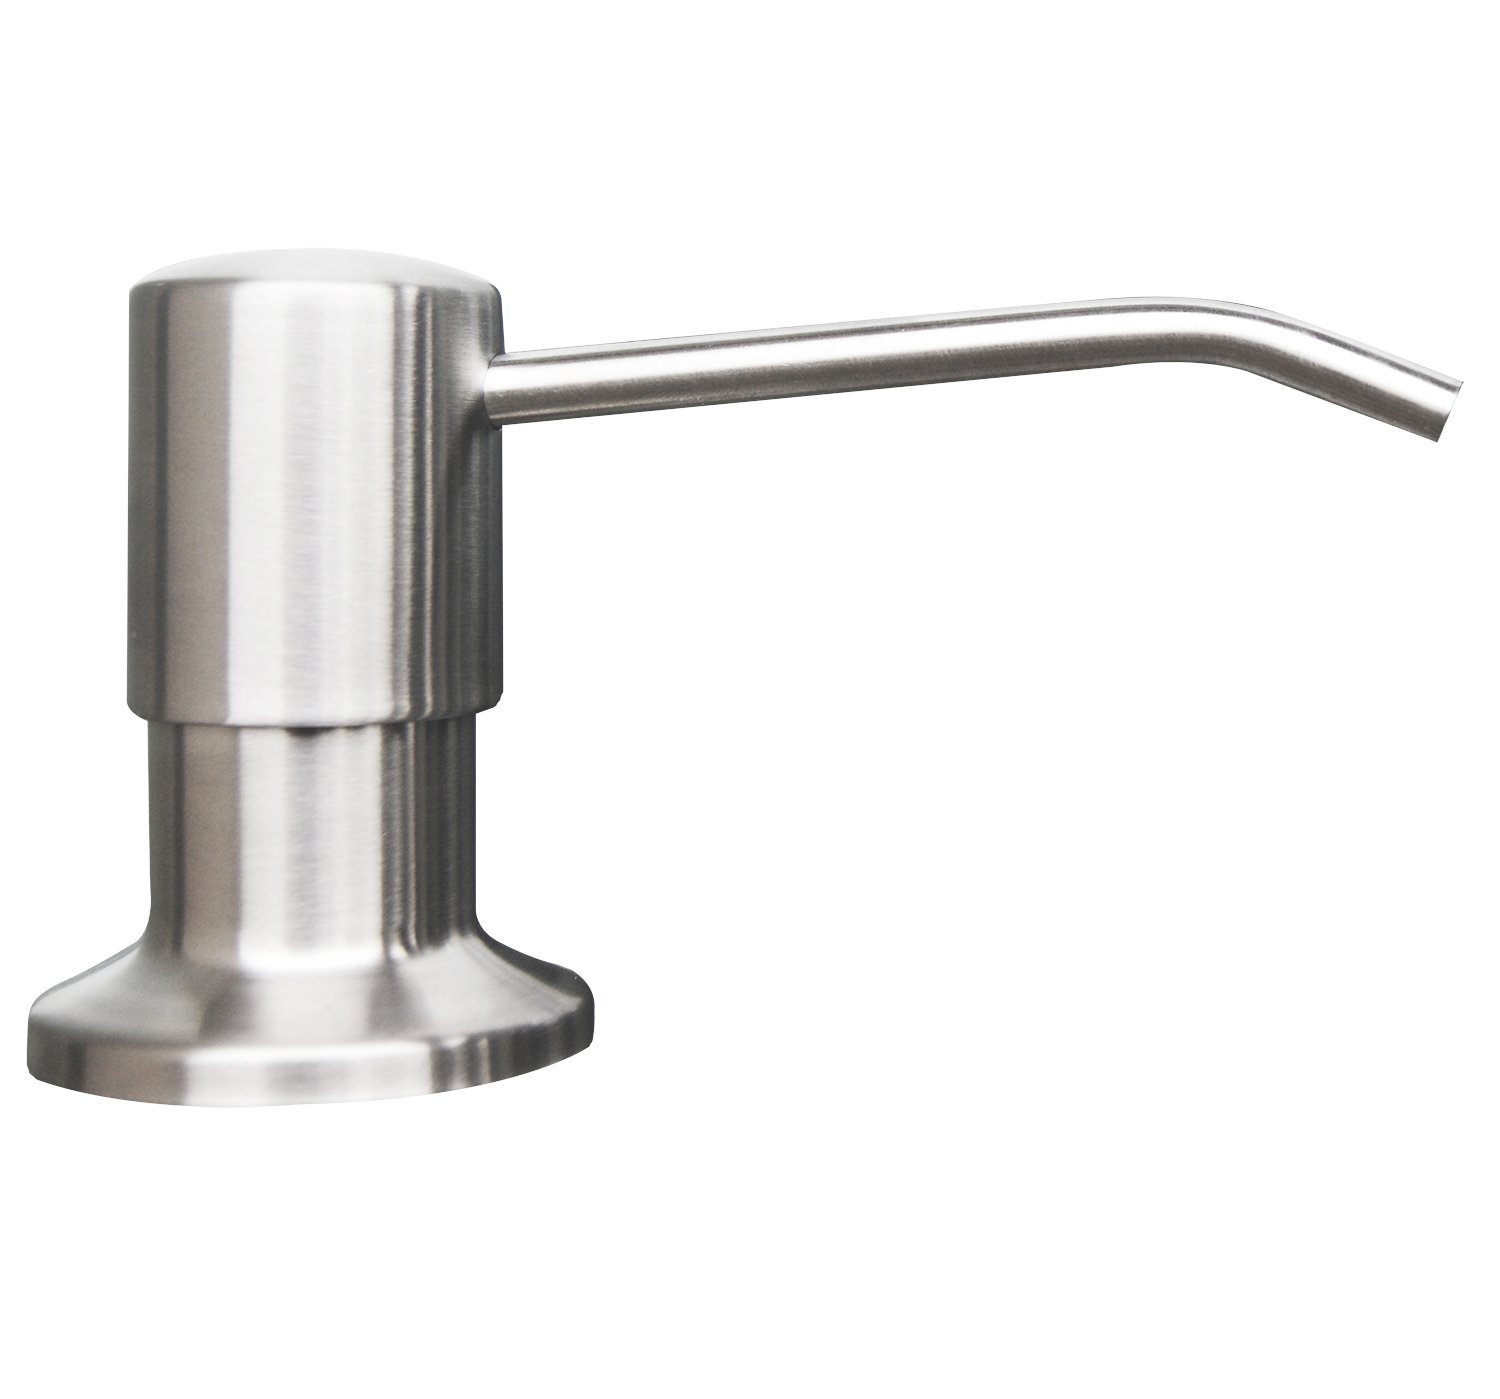 Metal Soap Dispenser Pump Stainless Steel Kitchen Sink Countertop Soap Dispenser